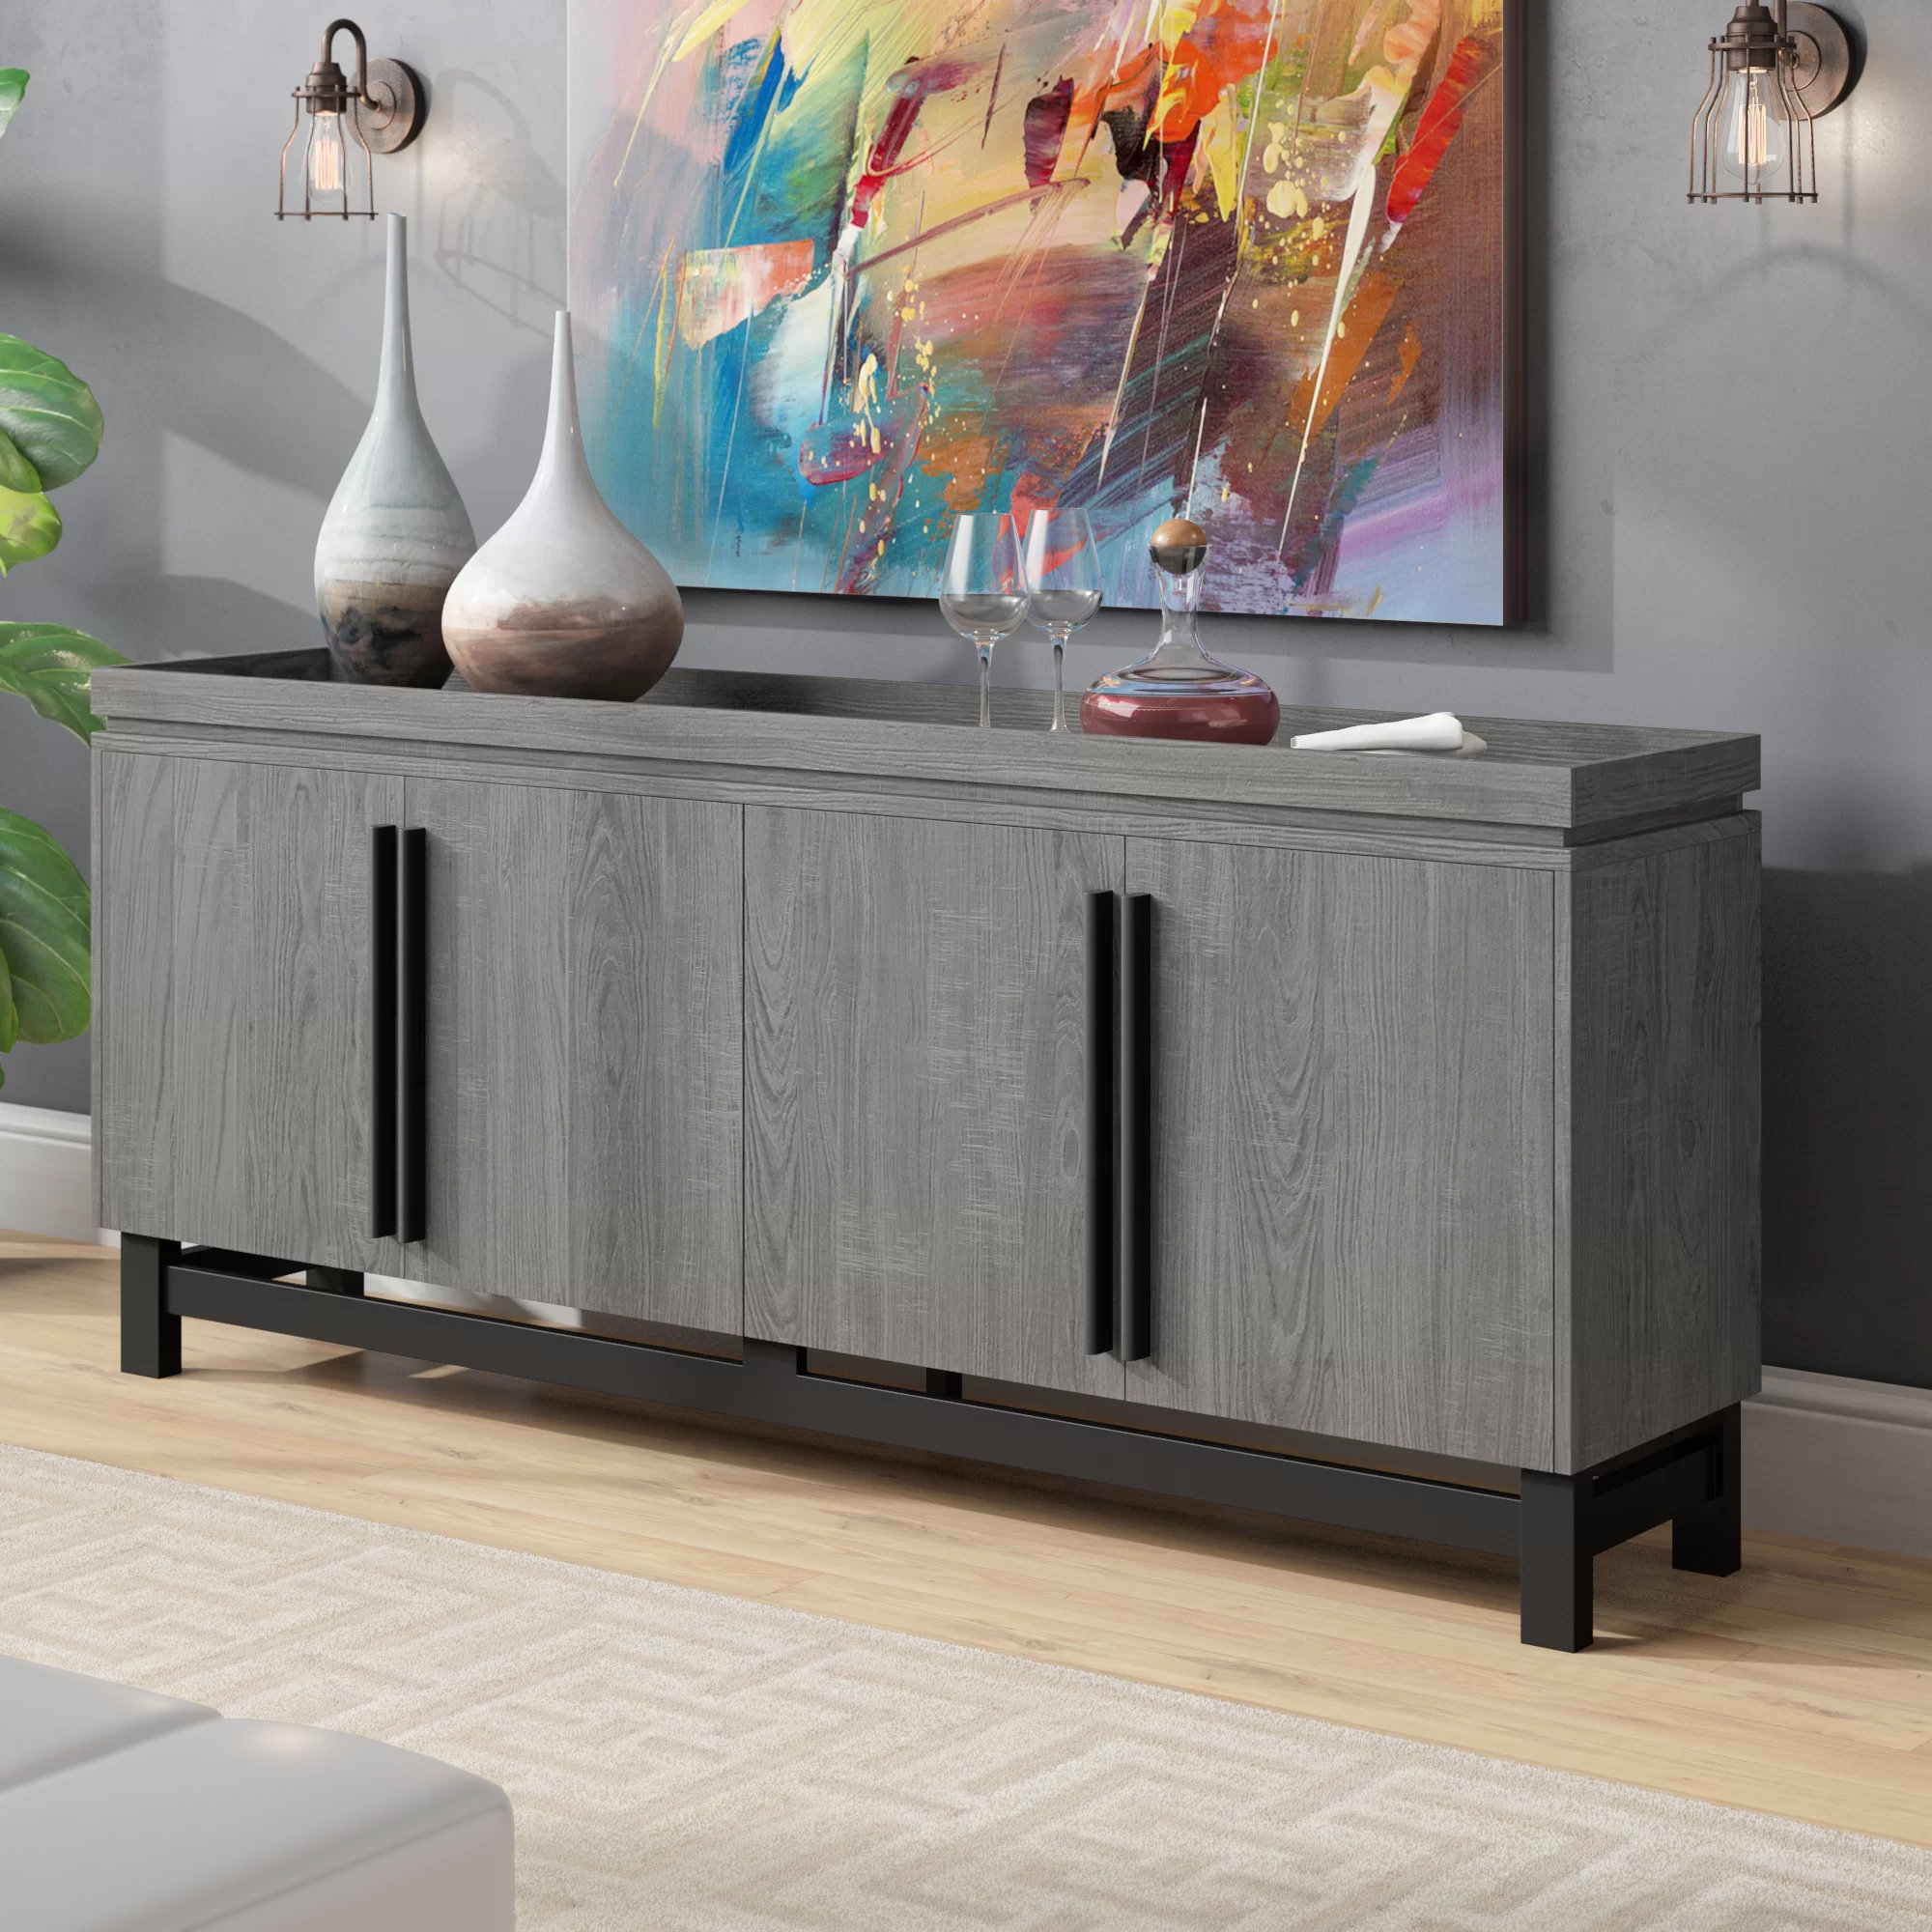 Extra Large Credenza | Wayfair In 2018 Barr Credenzas (#6 of 20)